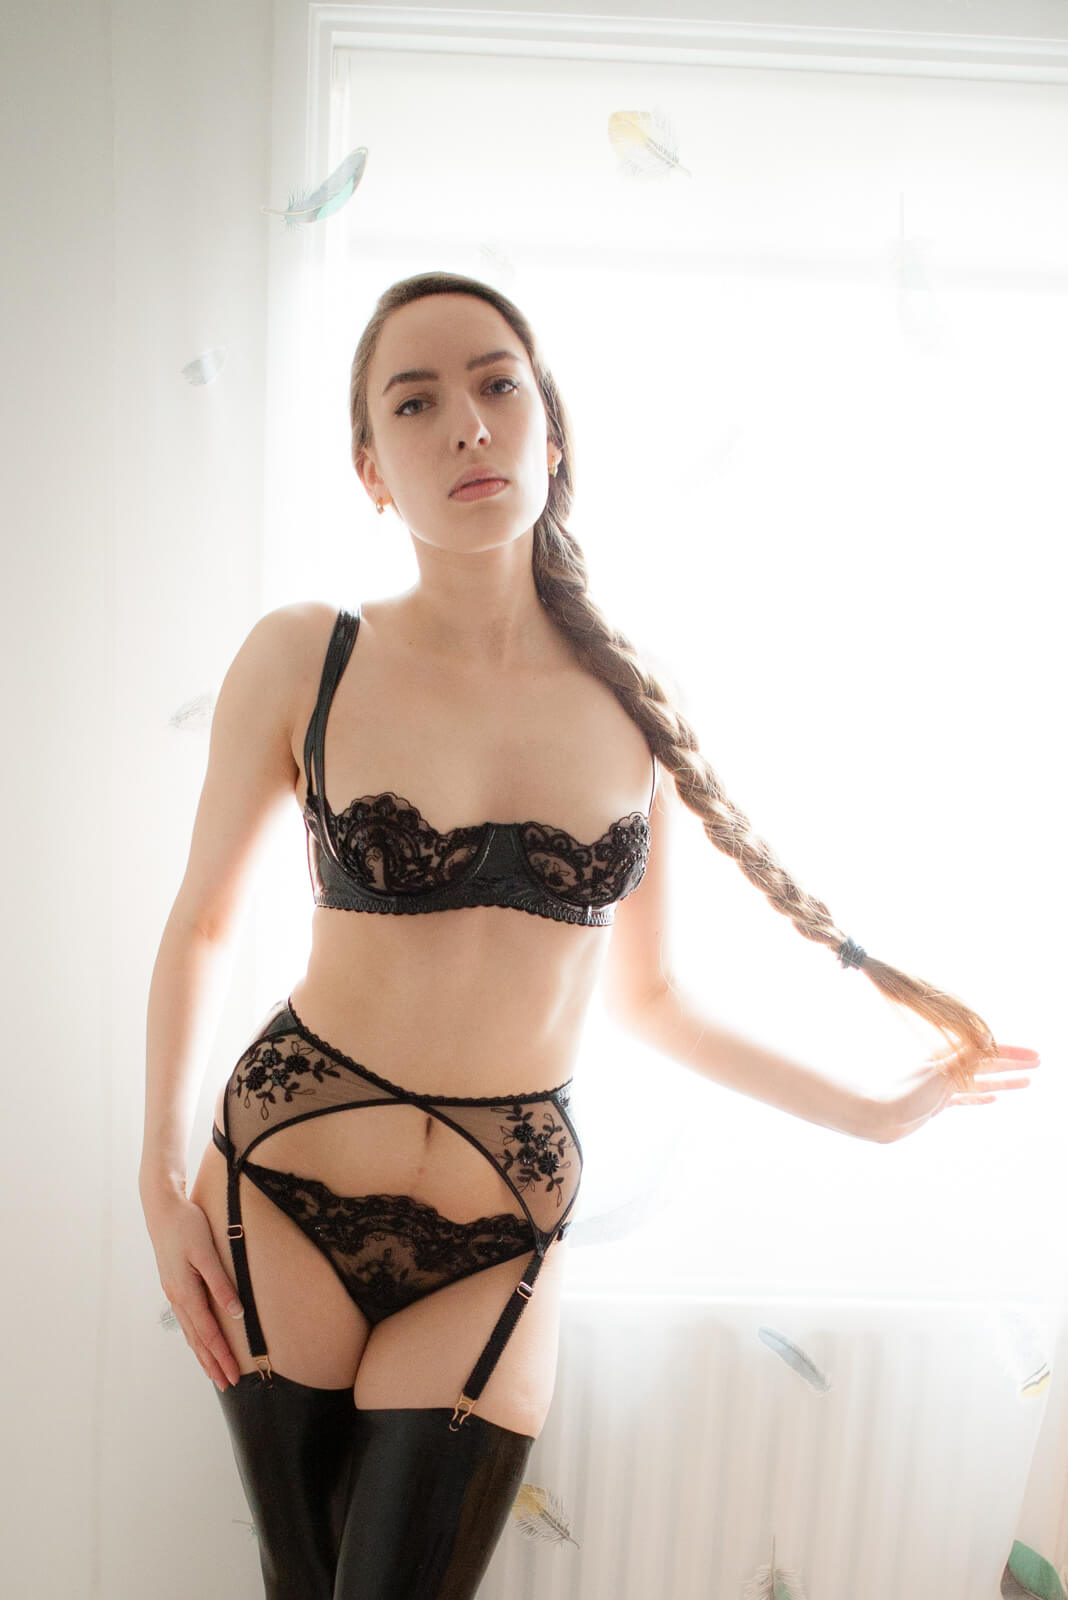 Loveday London Luxury Lingerie Review: Leather & Lace ...